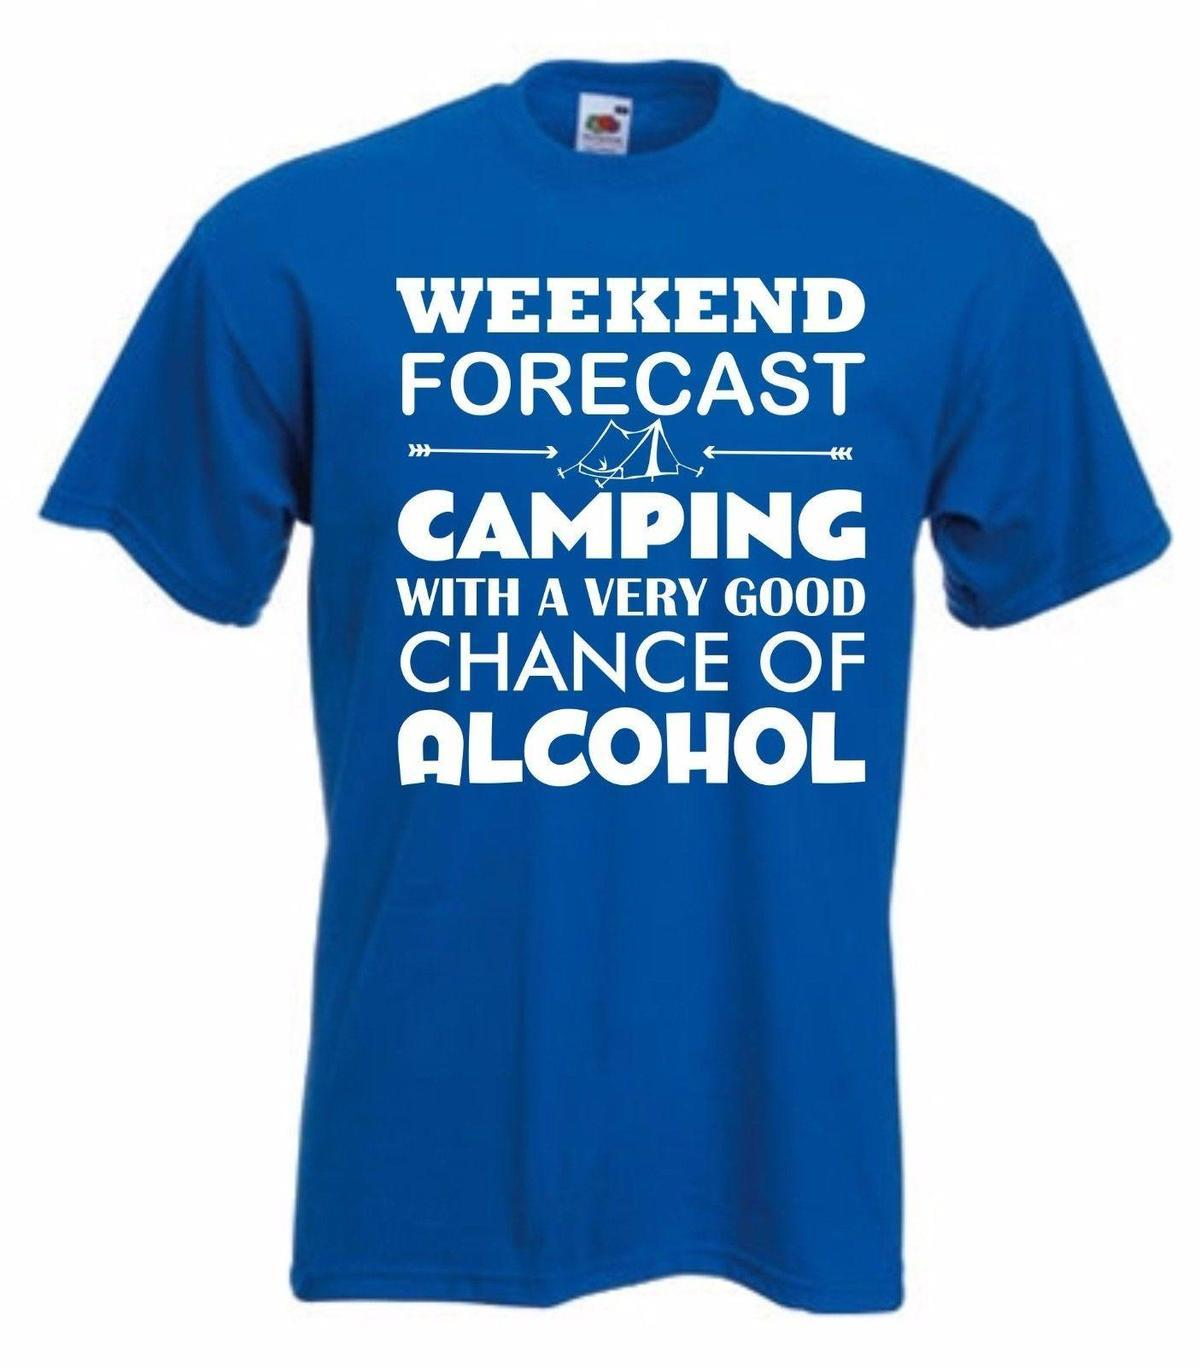 27db124940 Tent Alcohol T Shirt Funny Camping TShirt Weekend T Shirt Wine Beer S XXL  Tees Online Print Tees From Yuxin0004, $13.8| DHgate.Com